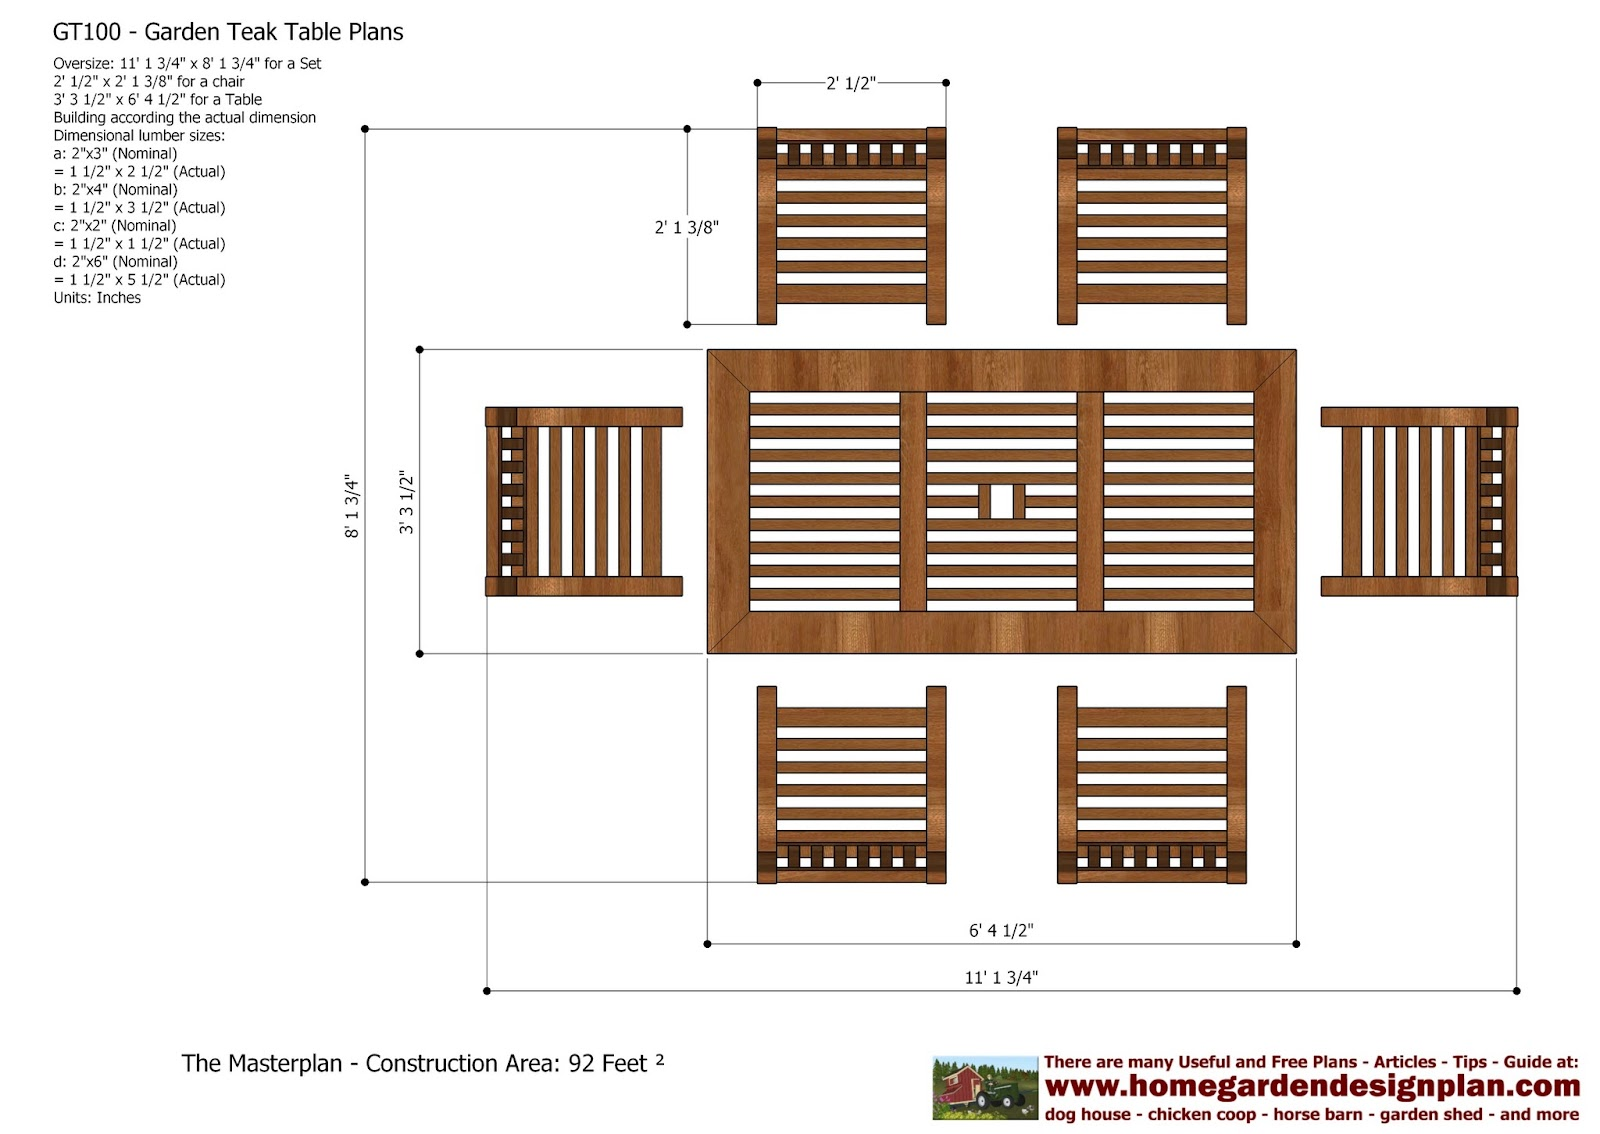 Garden Furniture Plans home garden plans: gt100 - garden teak tables - woodworking plans